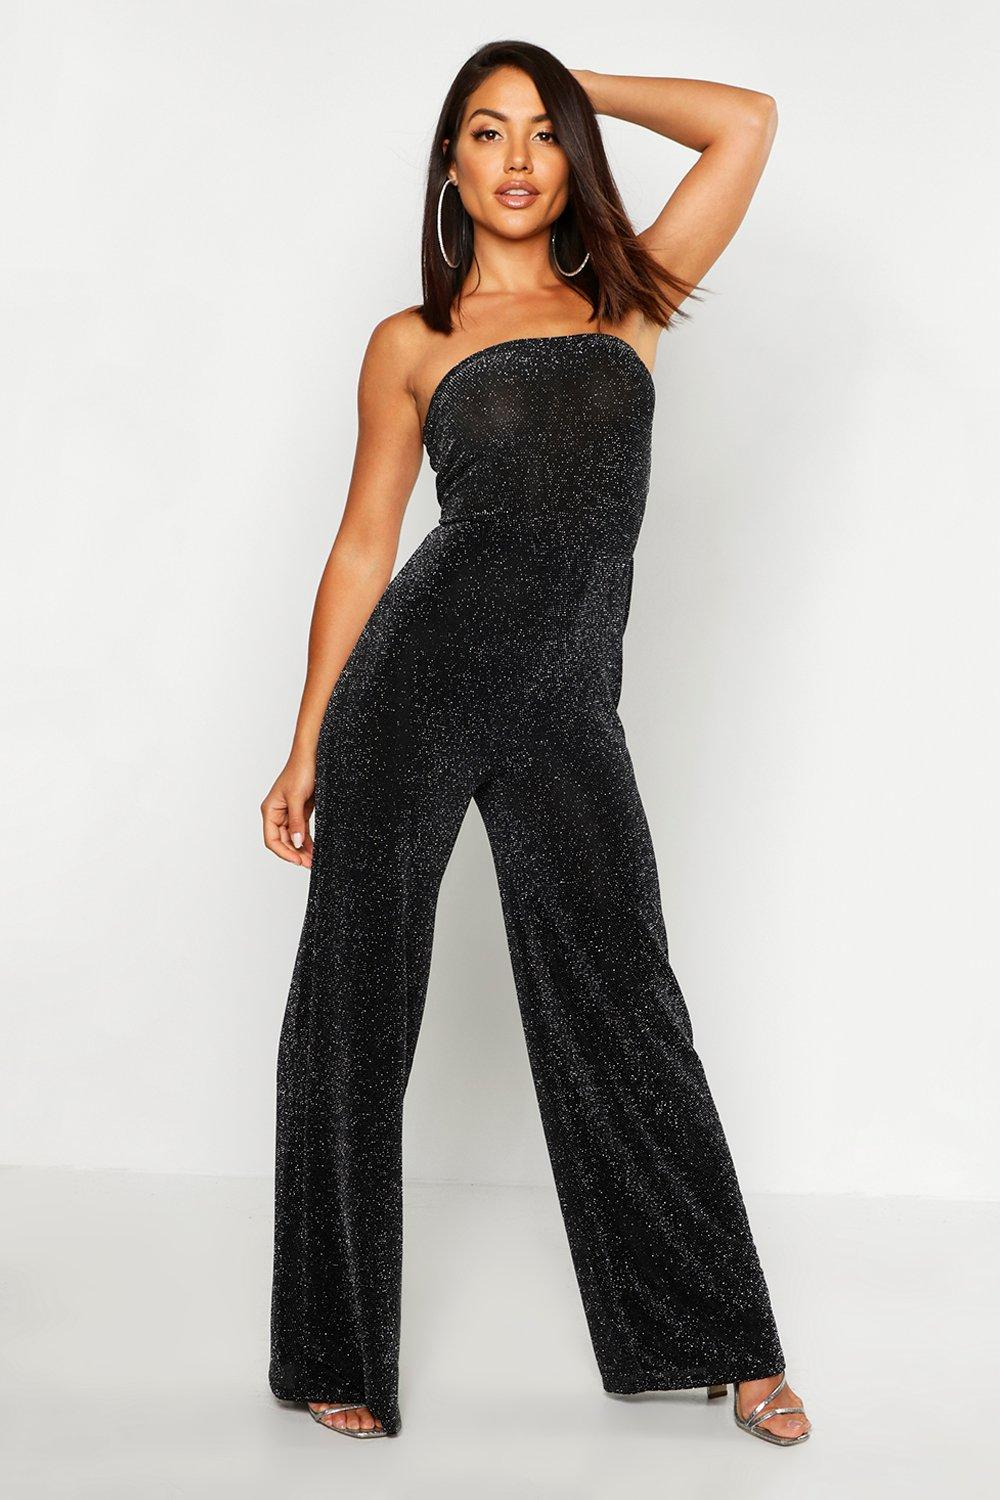 A sequin jumpsuit is the perfect party piece for all year round but especially as we approach the festive season. Ensure you're sparkling with our versatile pieces in black, white or brights, all of which look amazing styled with skyscraper heels, an oversized clutch and a pop of colour on the lips.